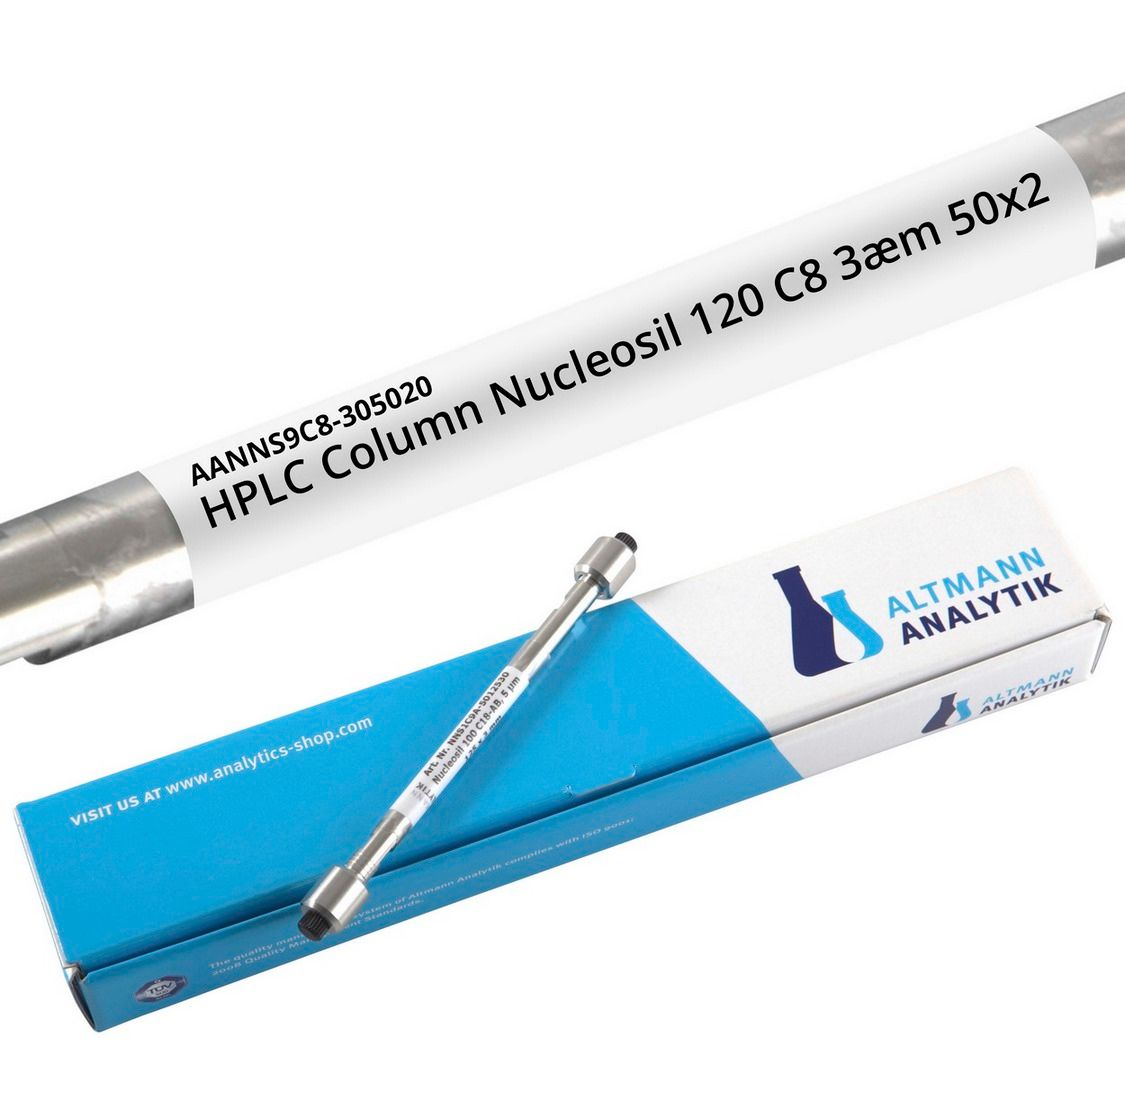 HPLC Column Nucleosil 120 C8 3µm 50x2 mm, 120A